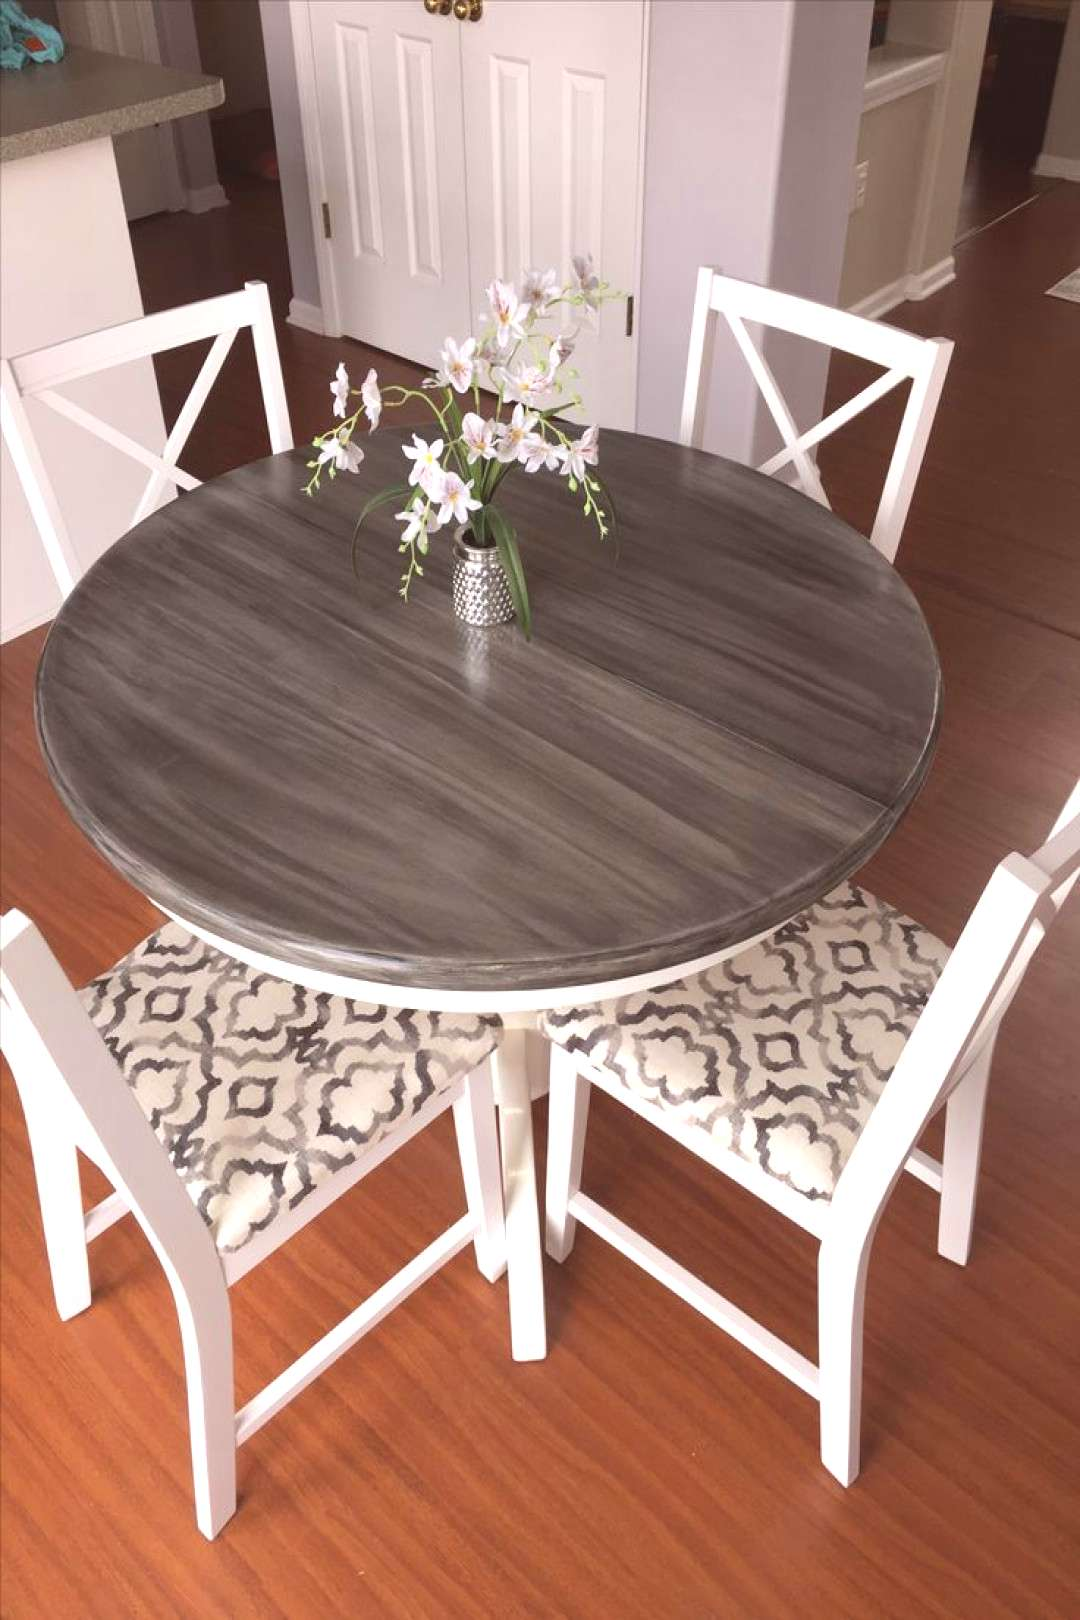 Amazing table my Mom and I refurnished